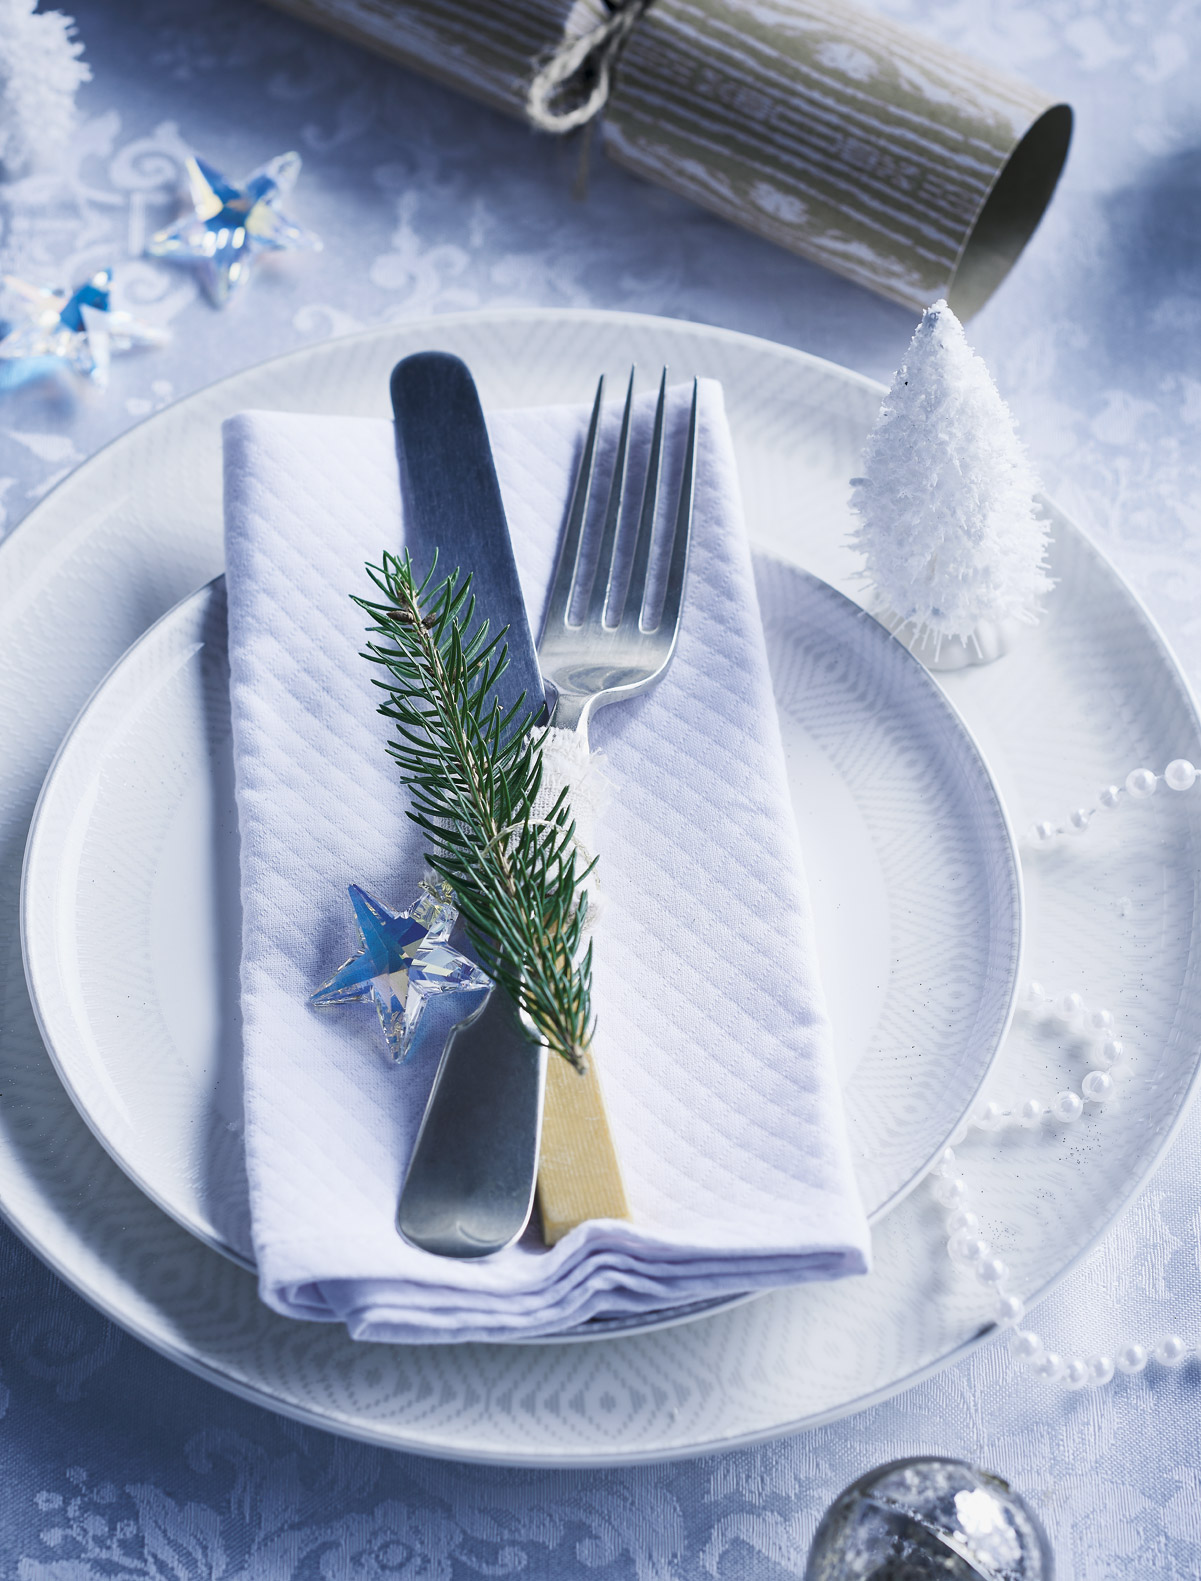 Christmas place setting from overhead